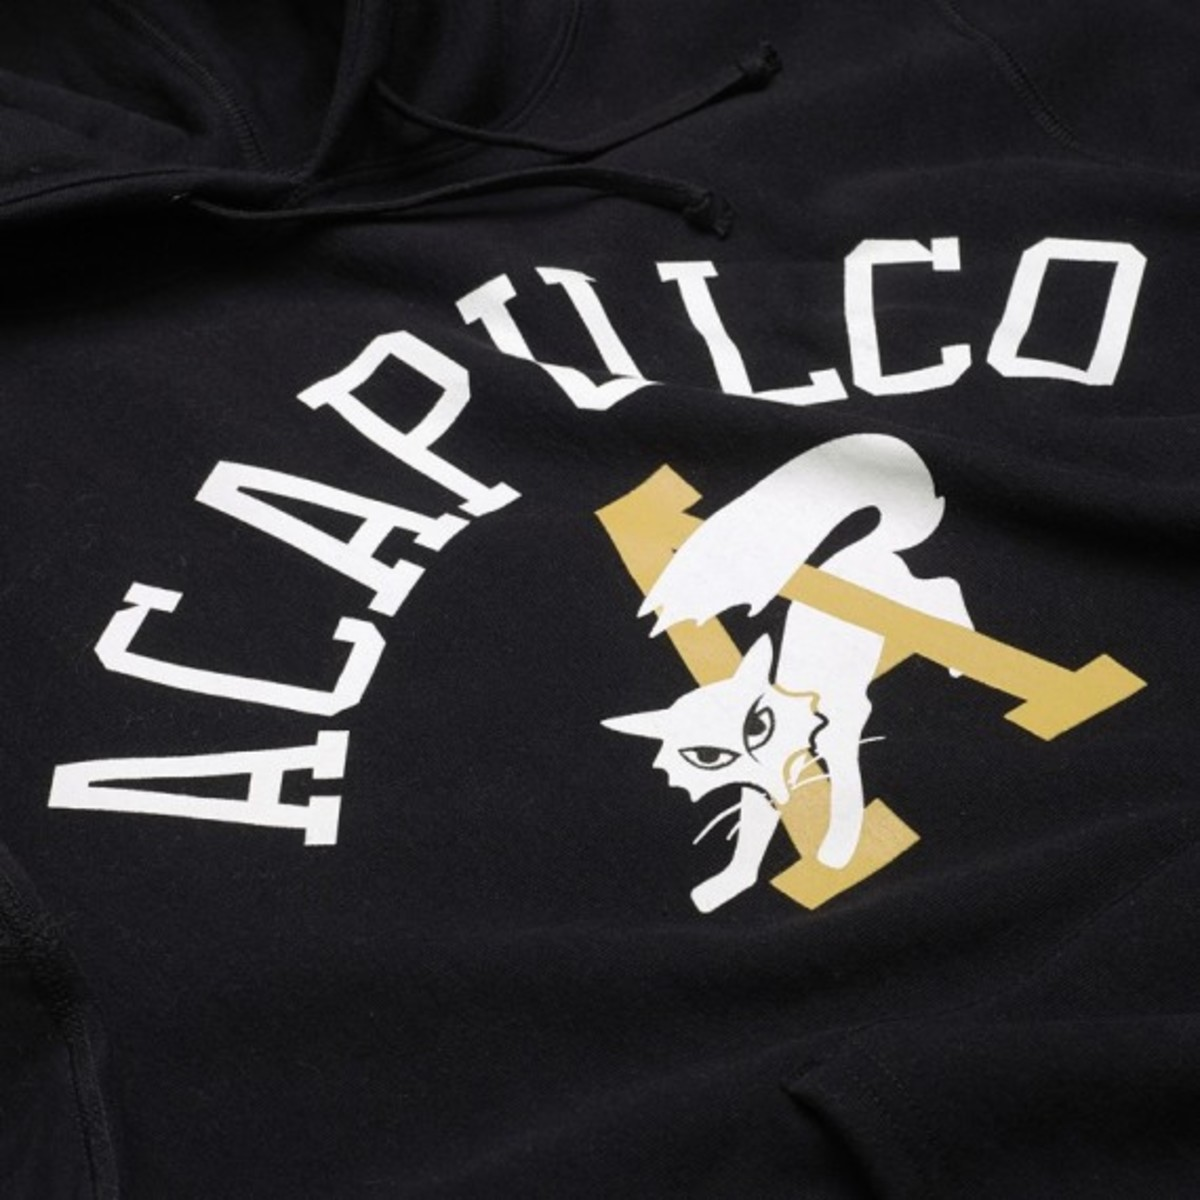 acapulco-gold-spring-2014-collection-delivery-1-24